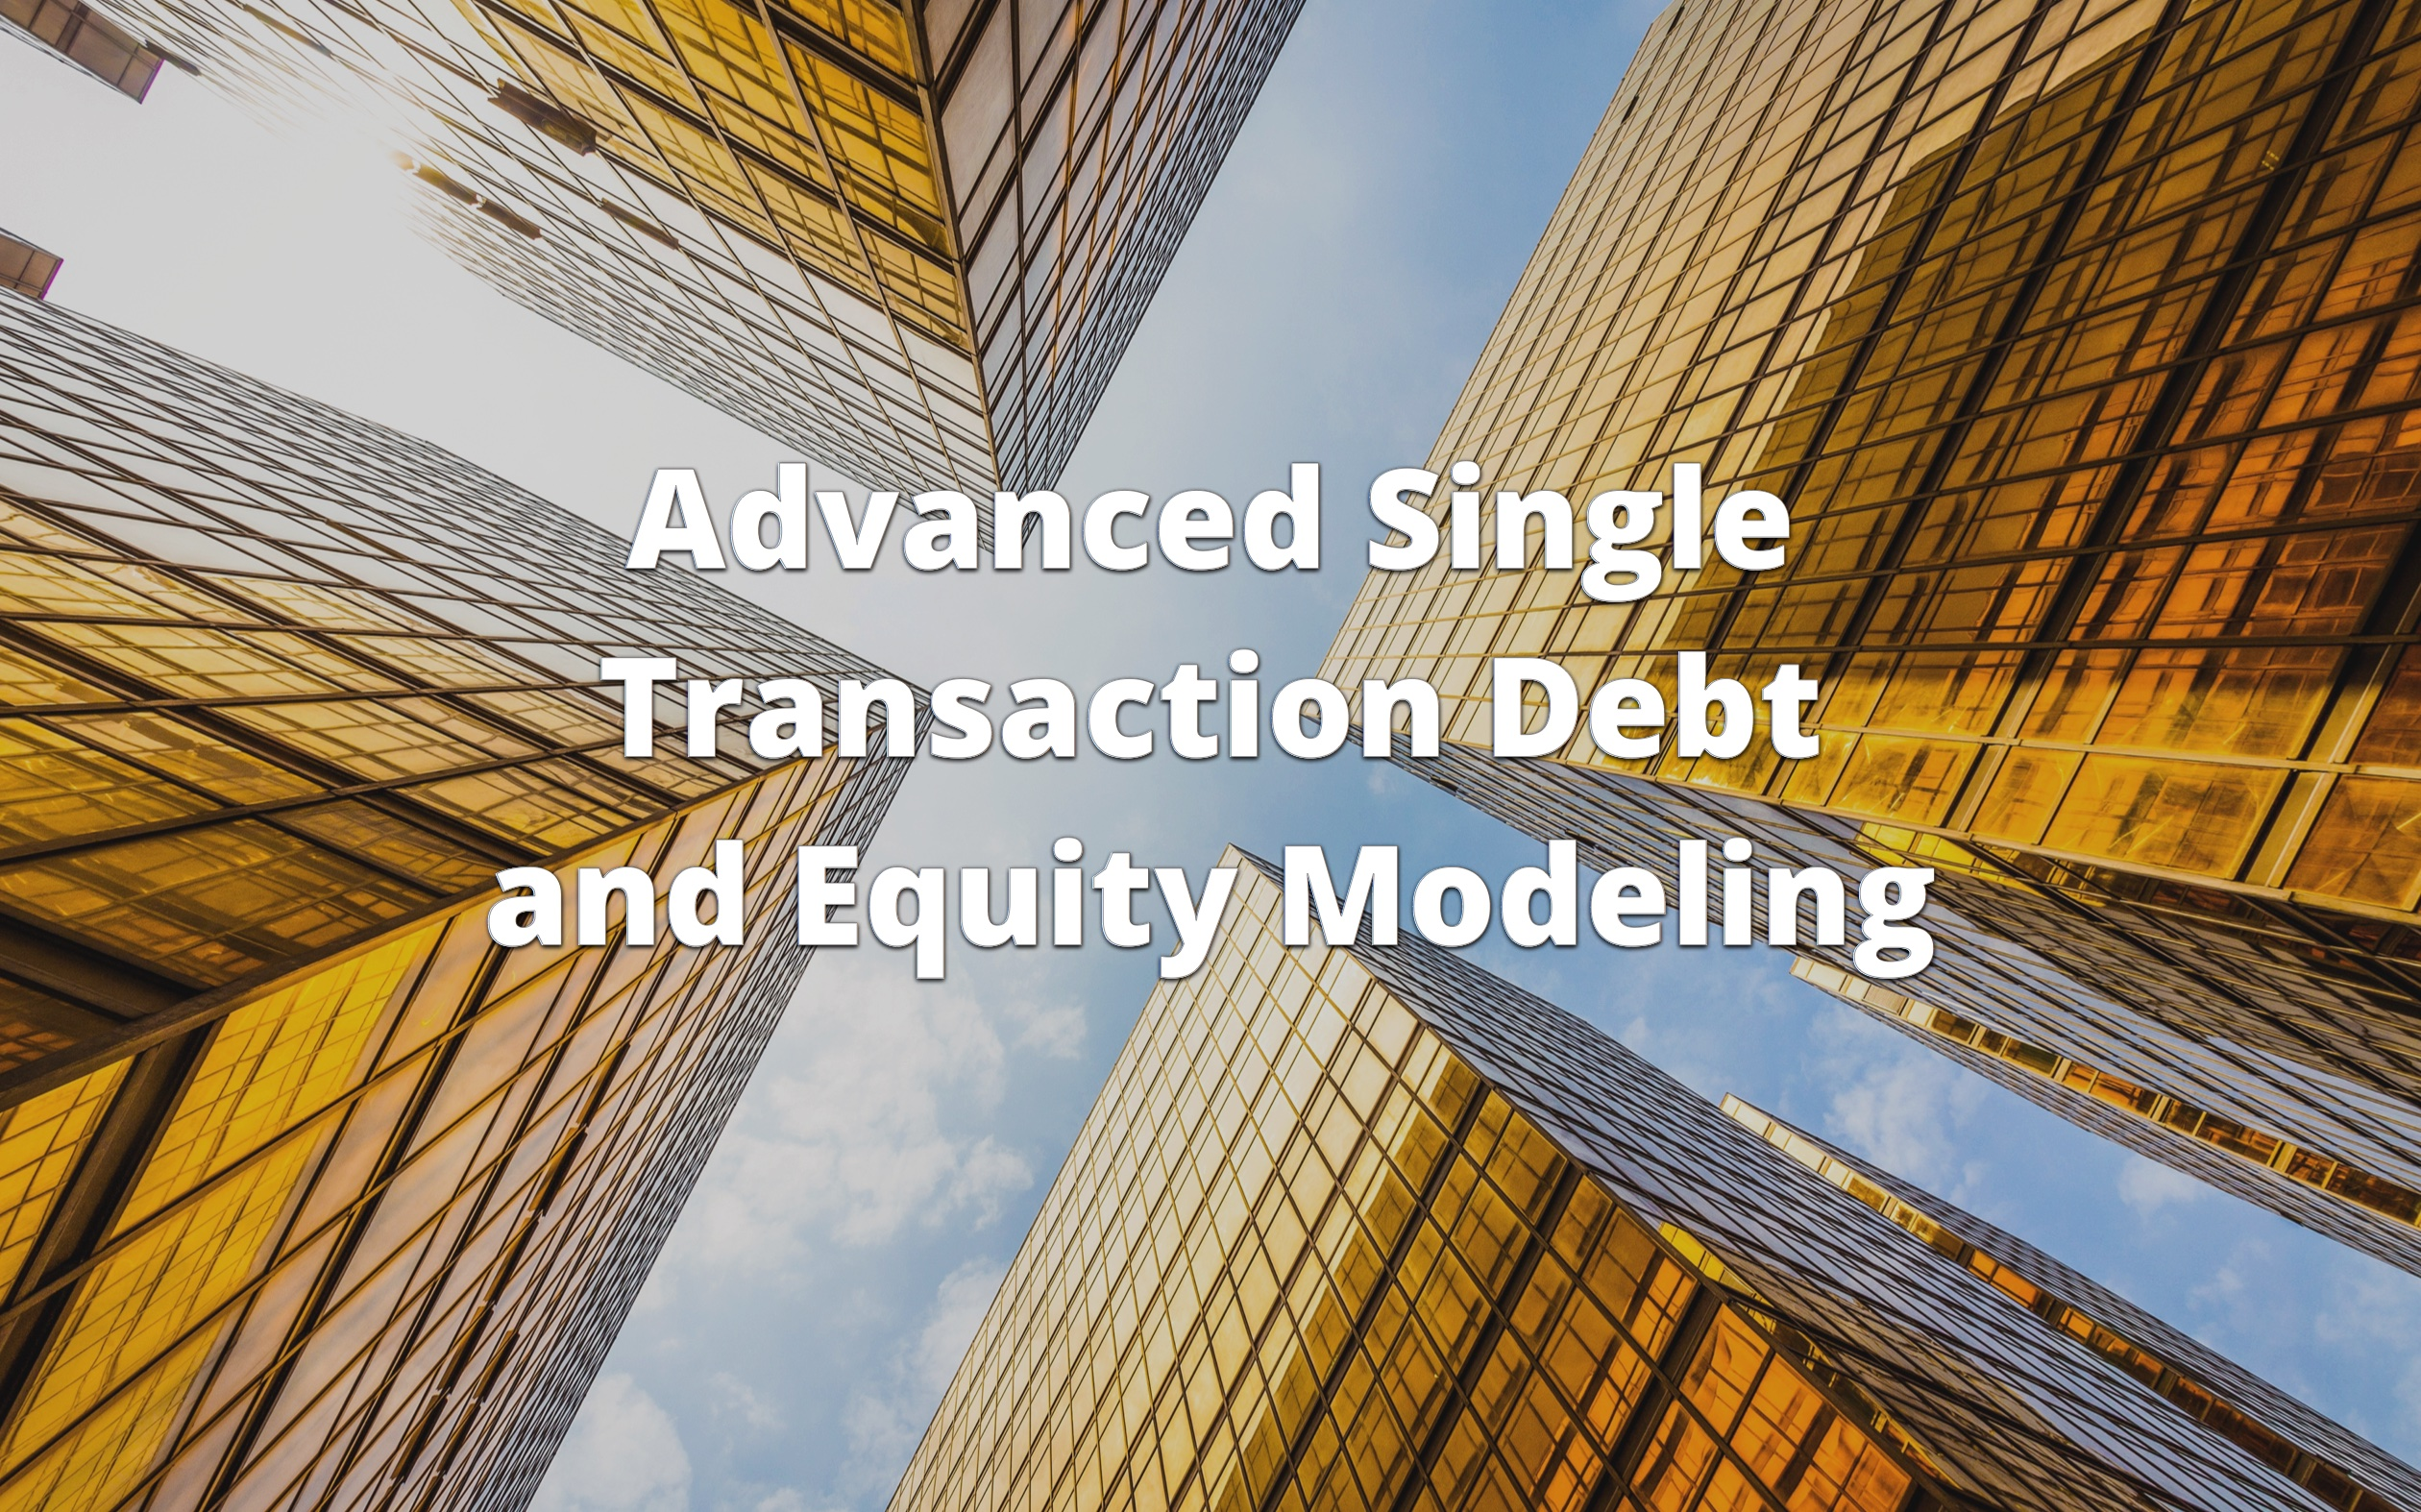 Advanced Single Transaction Debt and Equity Modeling Course